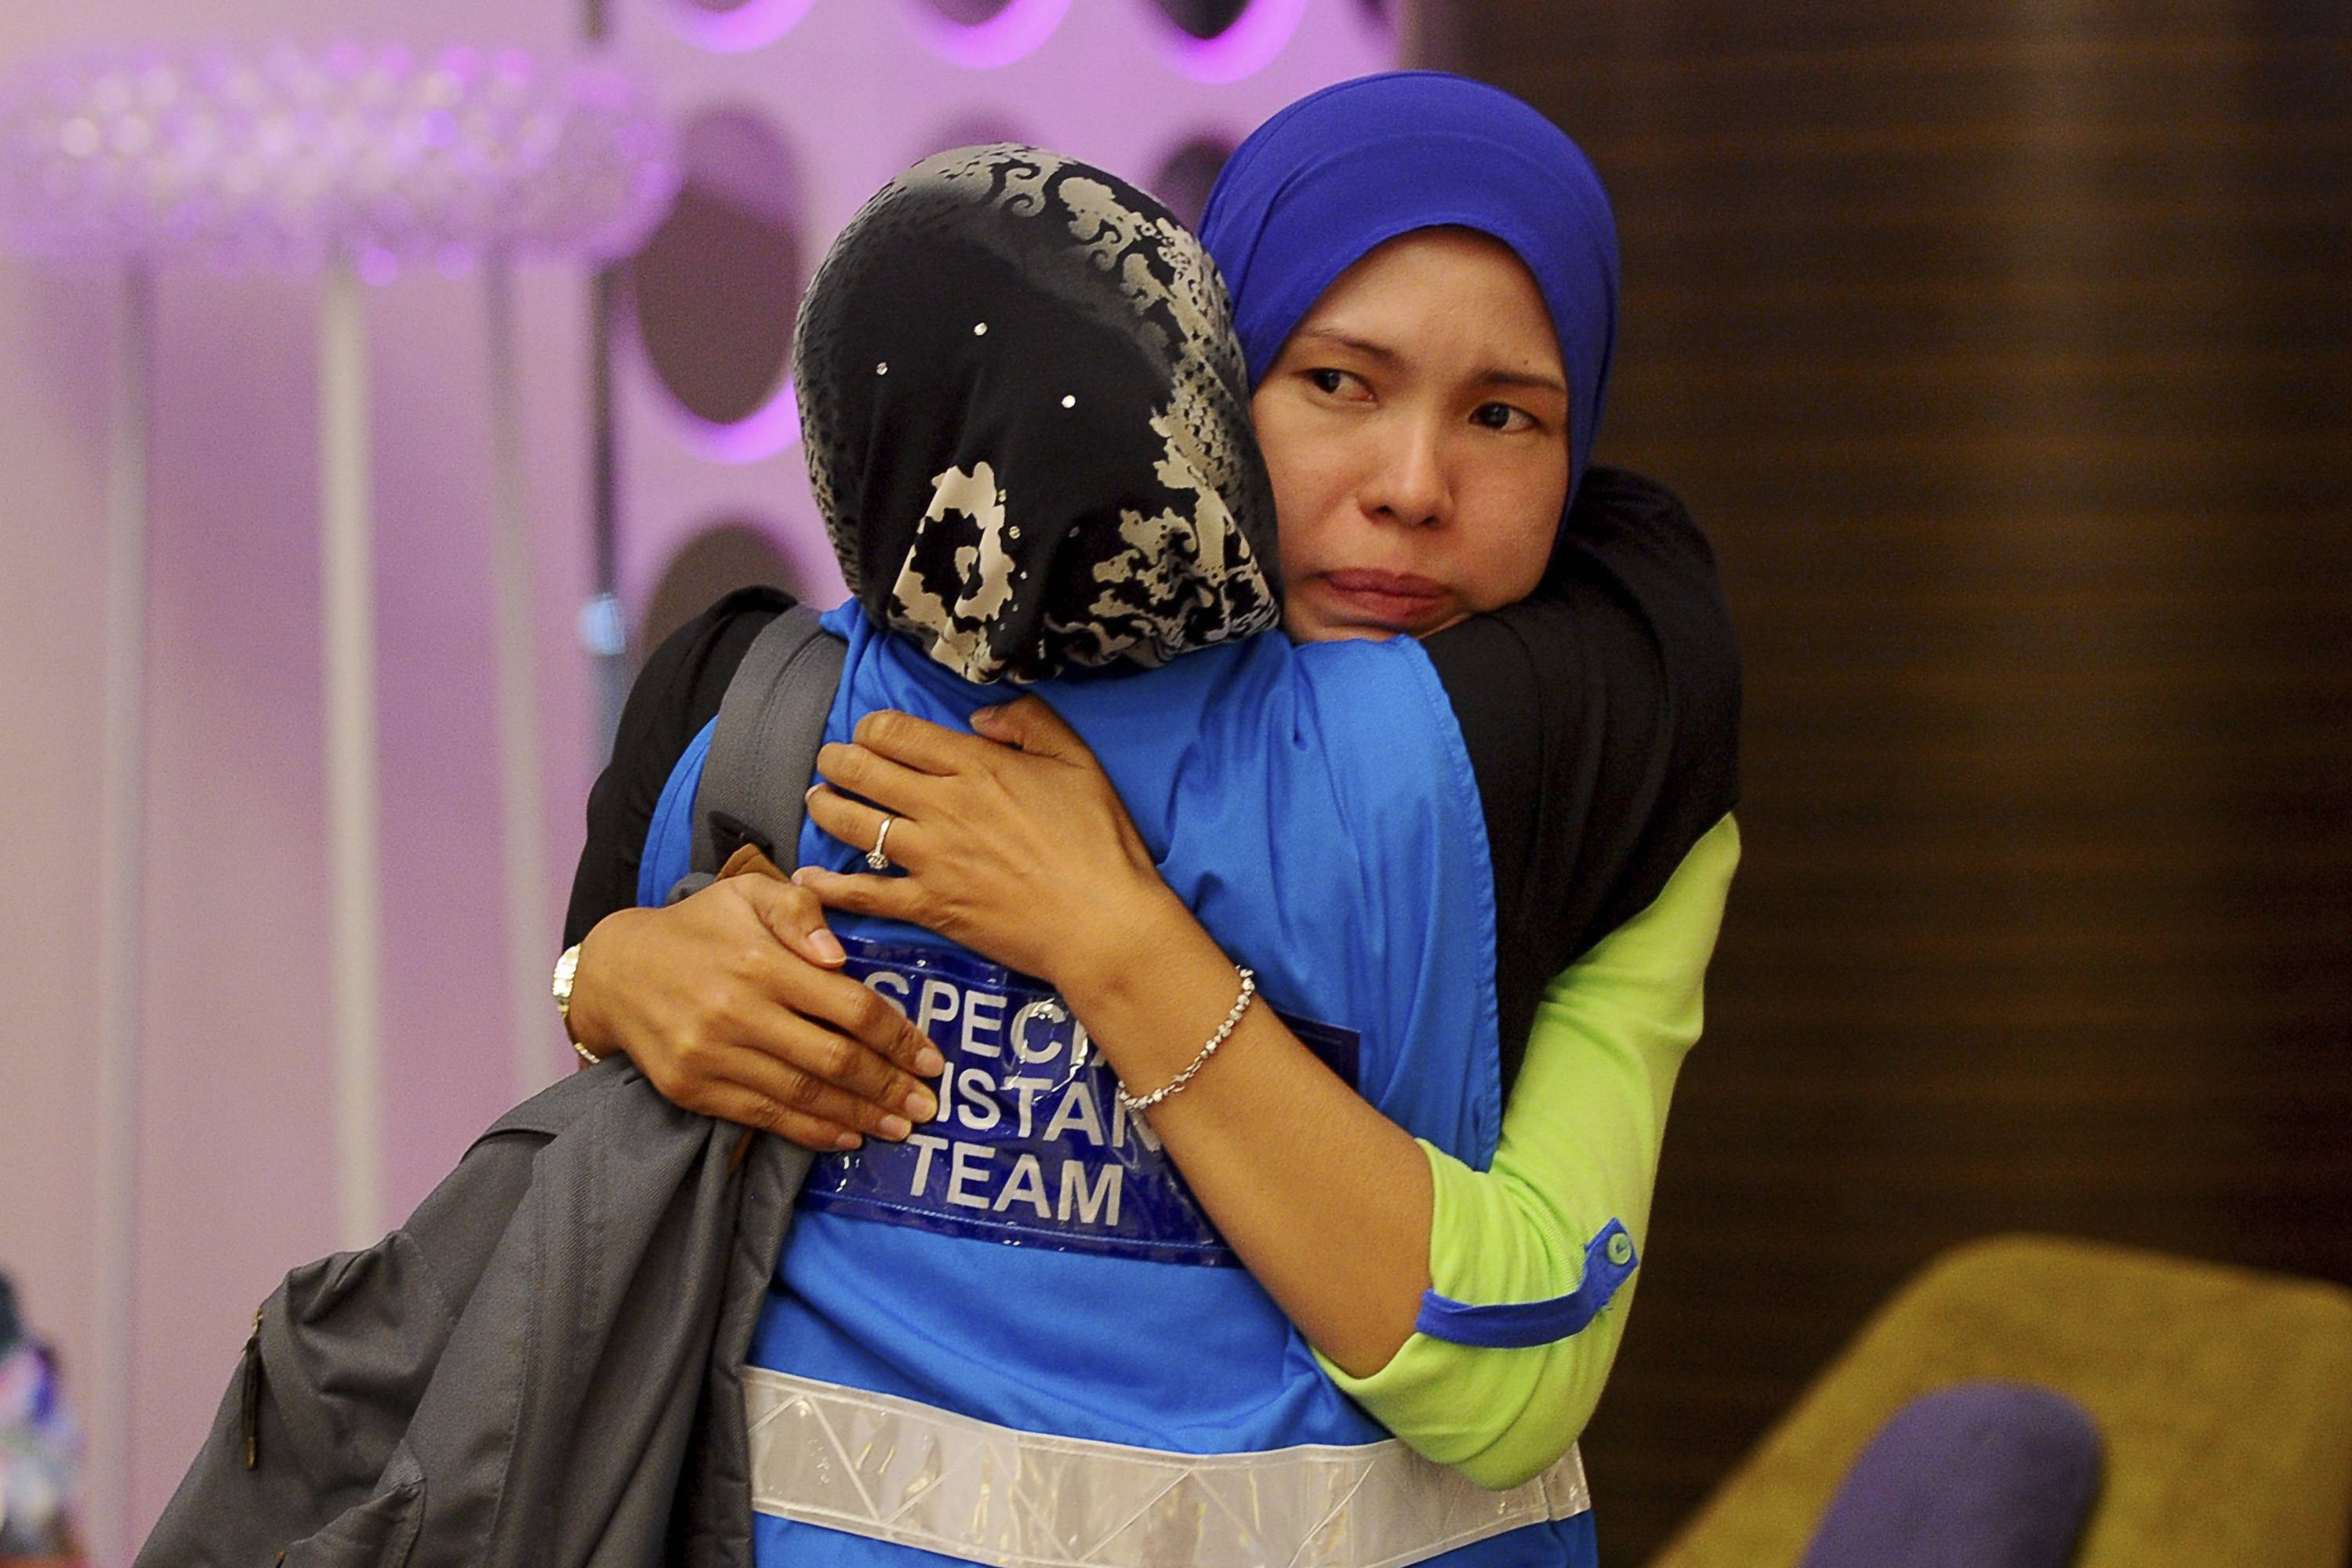 A family member, right, of passengers aboard a missing Malaysia Airlines plane is embraced Tuesday by a member of Special Assistance Team at a hotel in Putrajaya, Malaysia. Malaysia said Tuesday that it has narrowed the search for a downed jetliner to an area the size of Texas and Oklahoma in the southern Indian Ocean, while Australia said improved weather would allow the hunt for possible debris from the plane to resume.